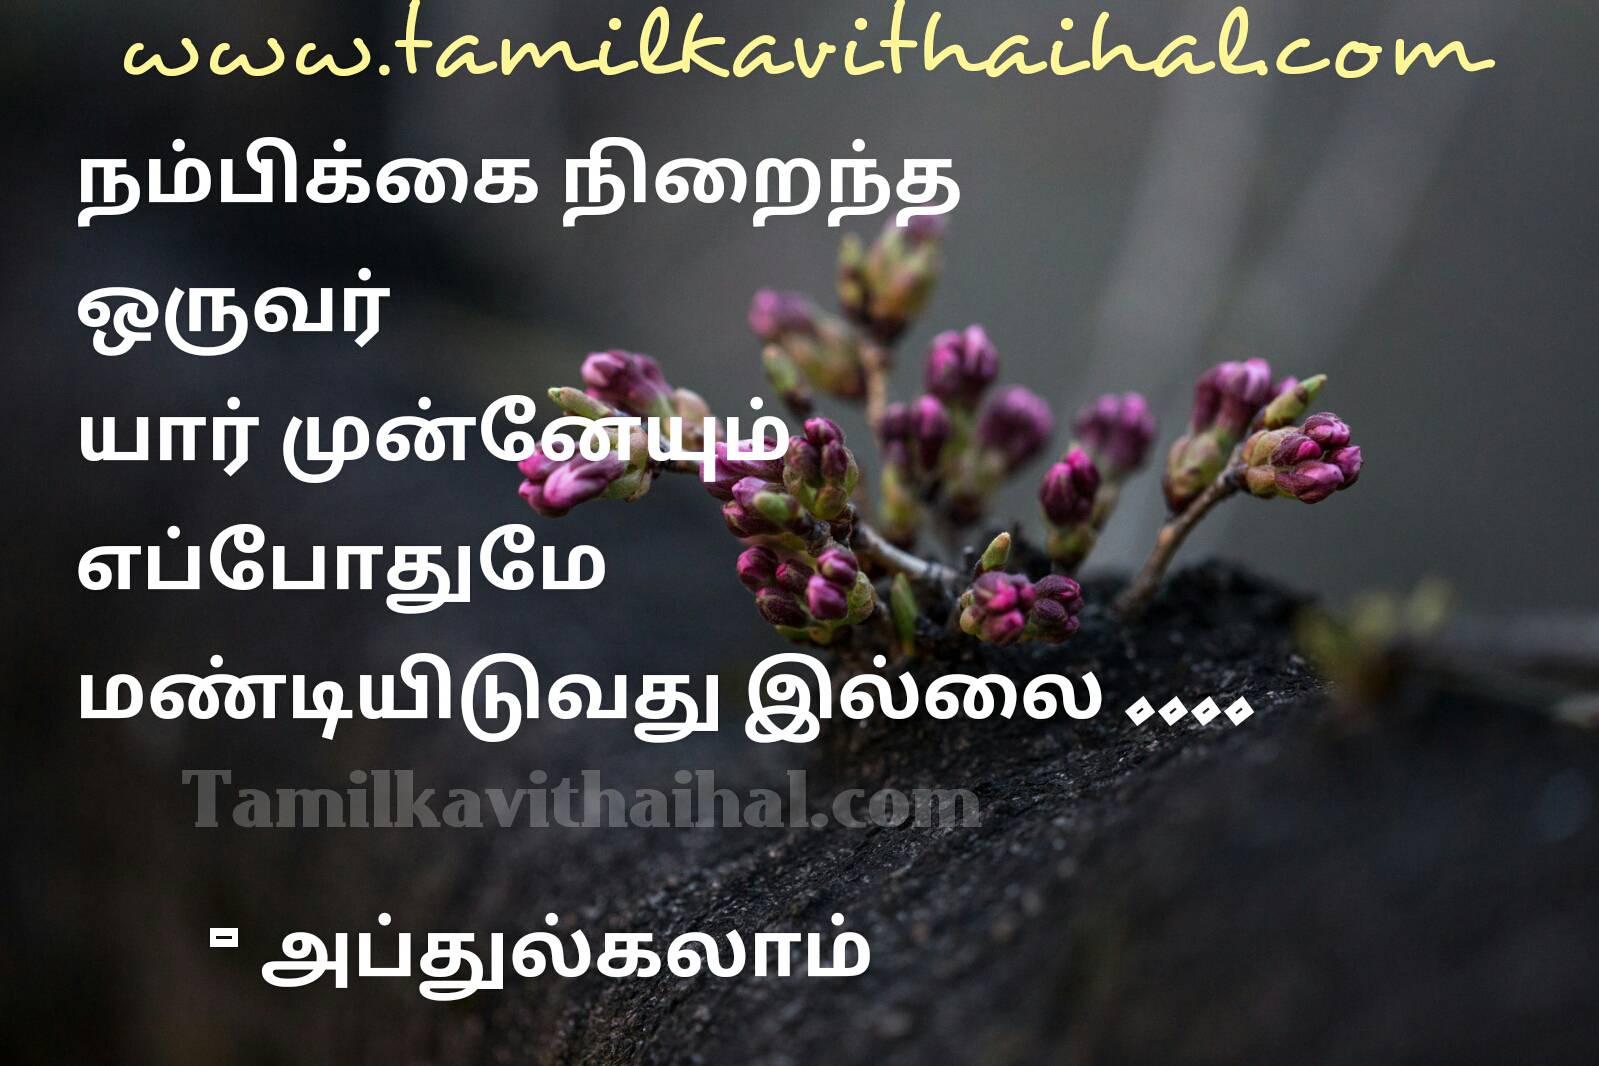 Best tamil abj abdhul kalam quotes nambikkai positive thathuvam facebook whatsapp dp download